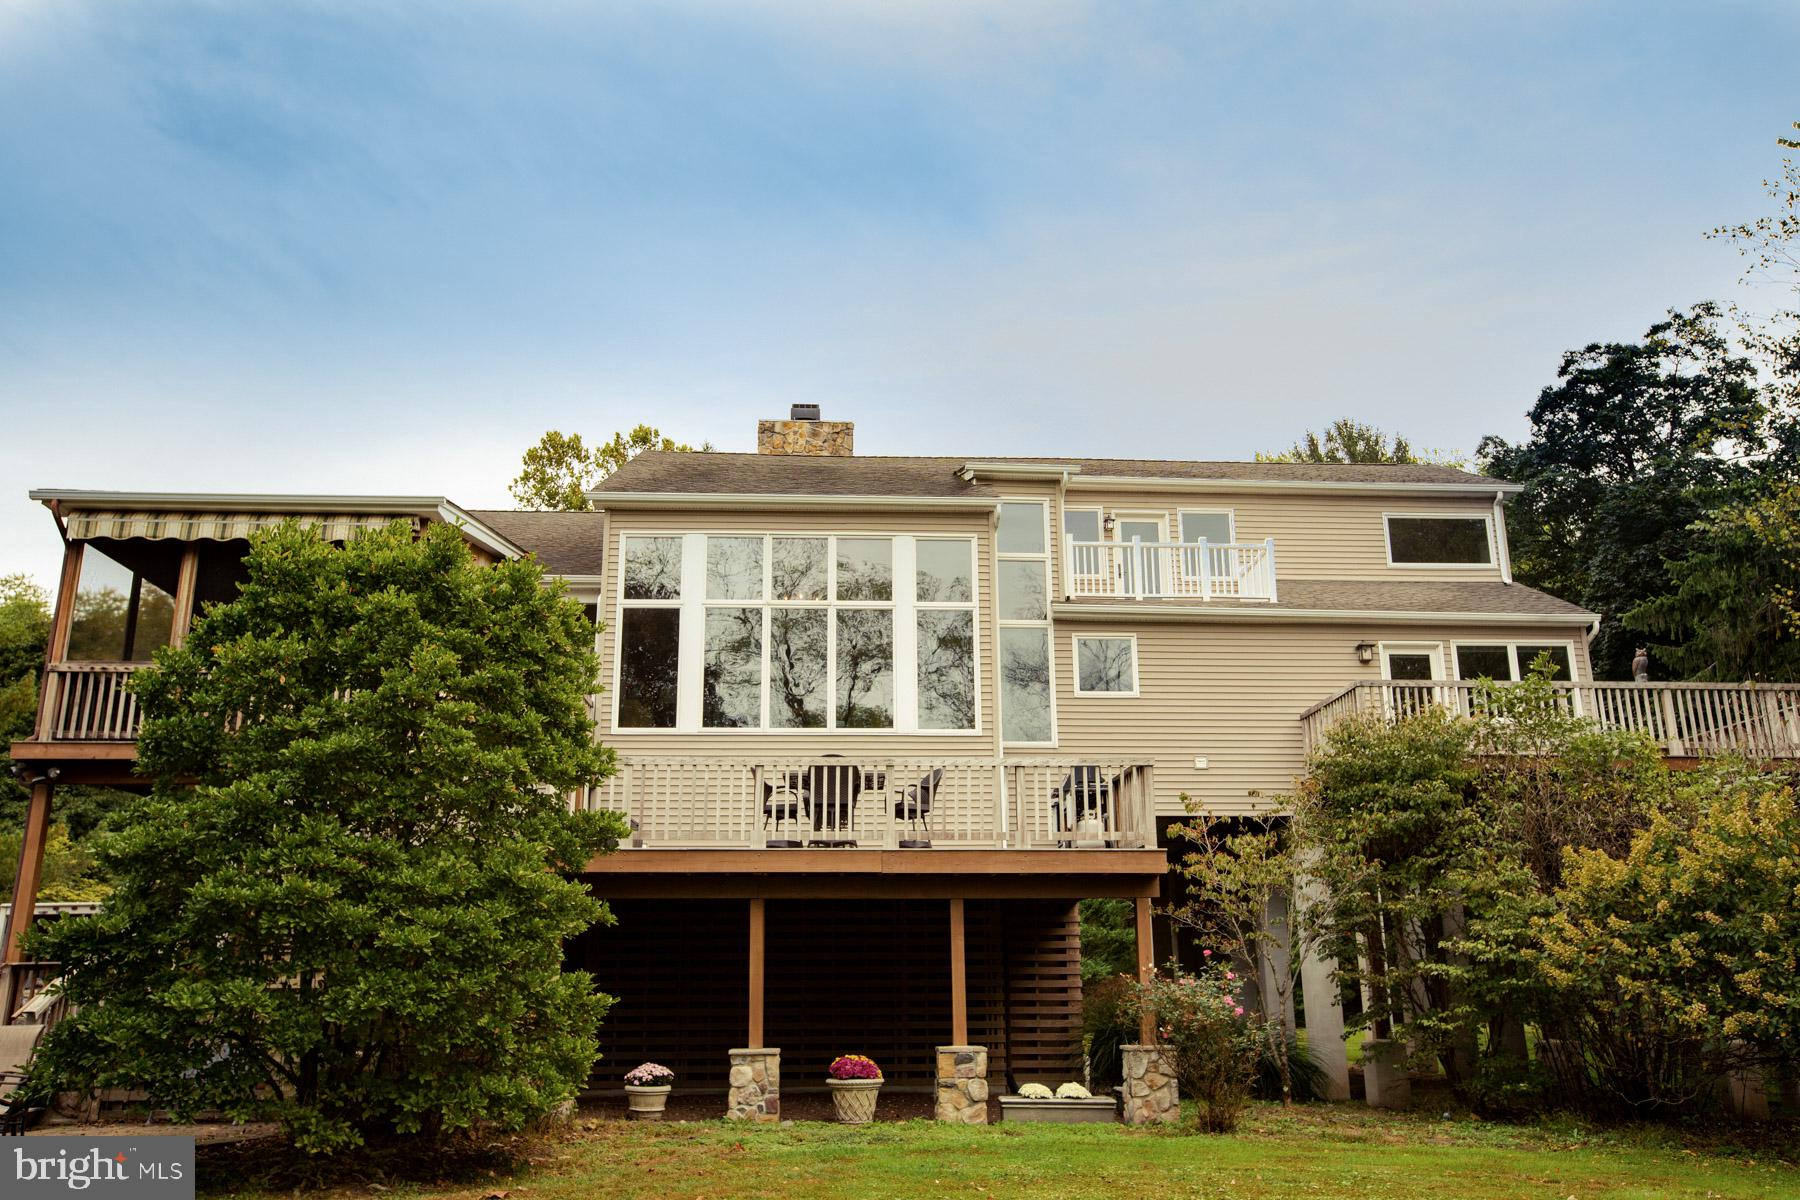 15 RIVER ROAD, FRENCHTOWN, NJ 08825